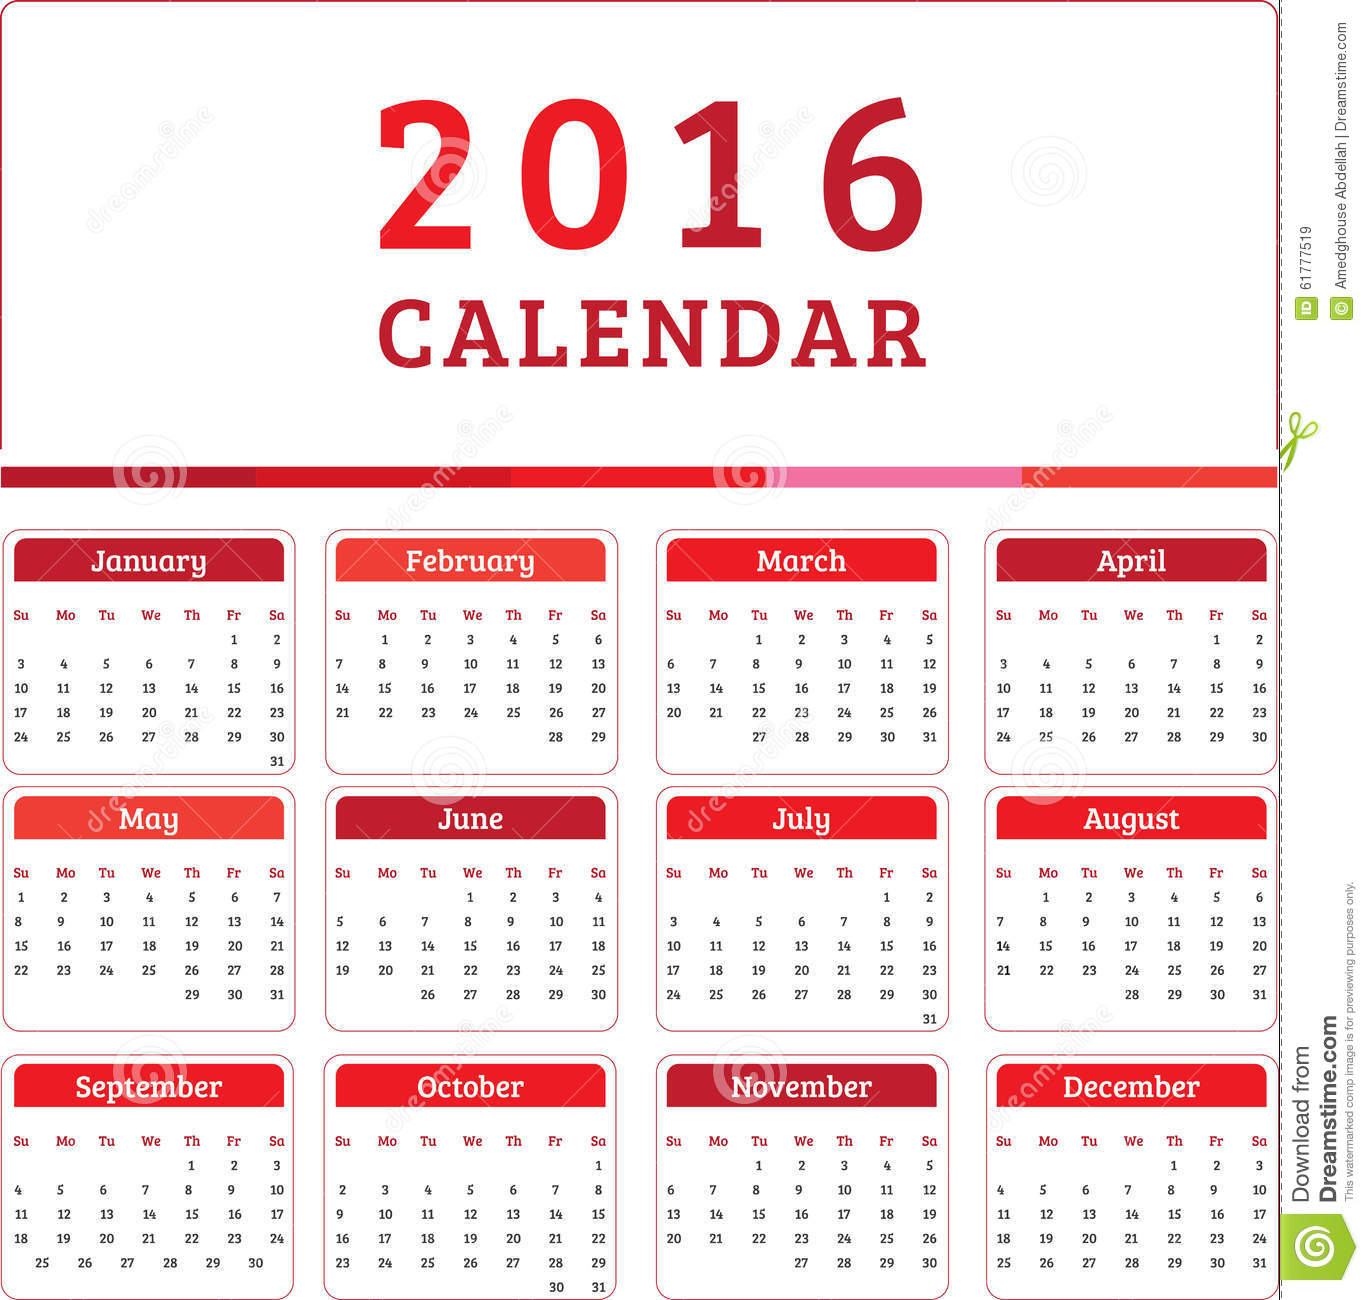 Los Mese Del Año En Ingles English Calendar 2016 Design Stock Vector Illustration Of Date